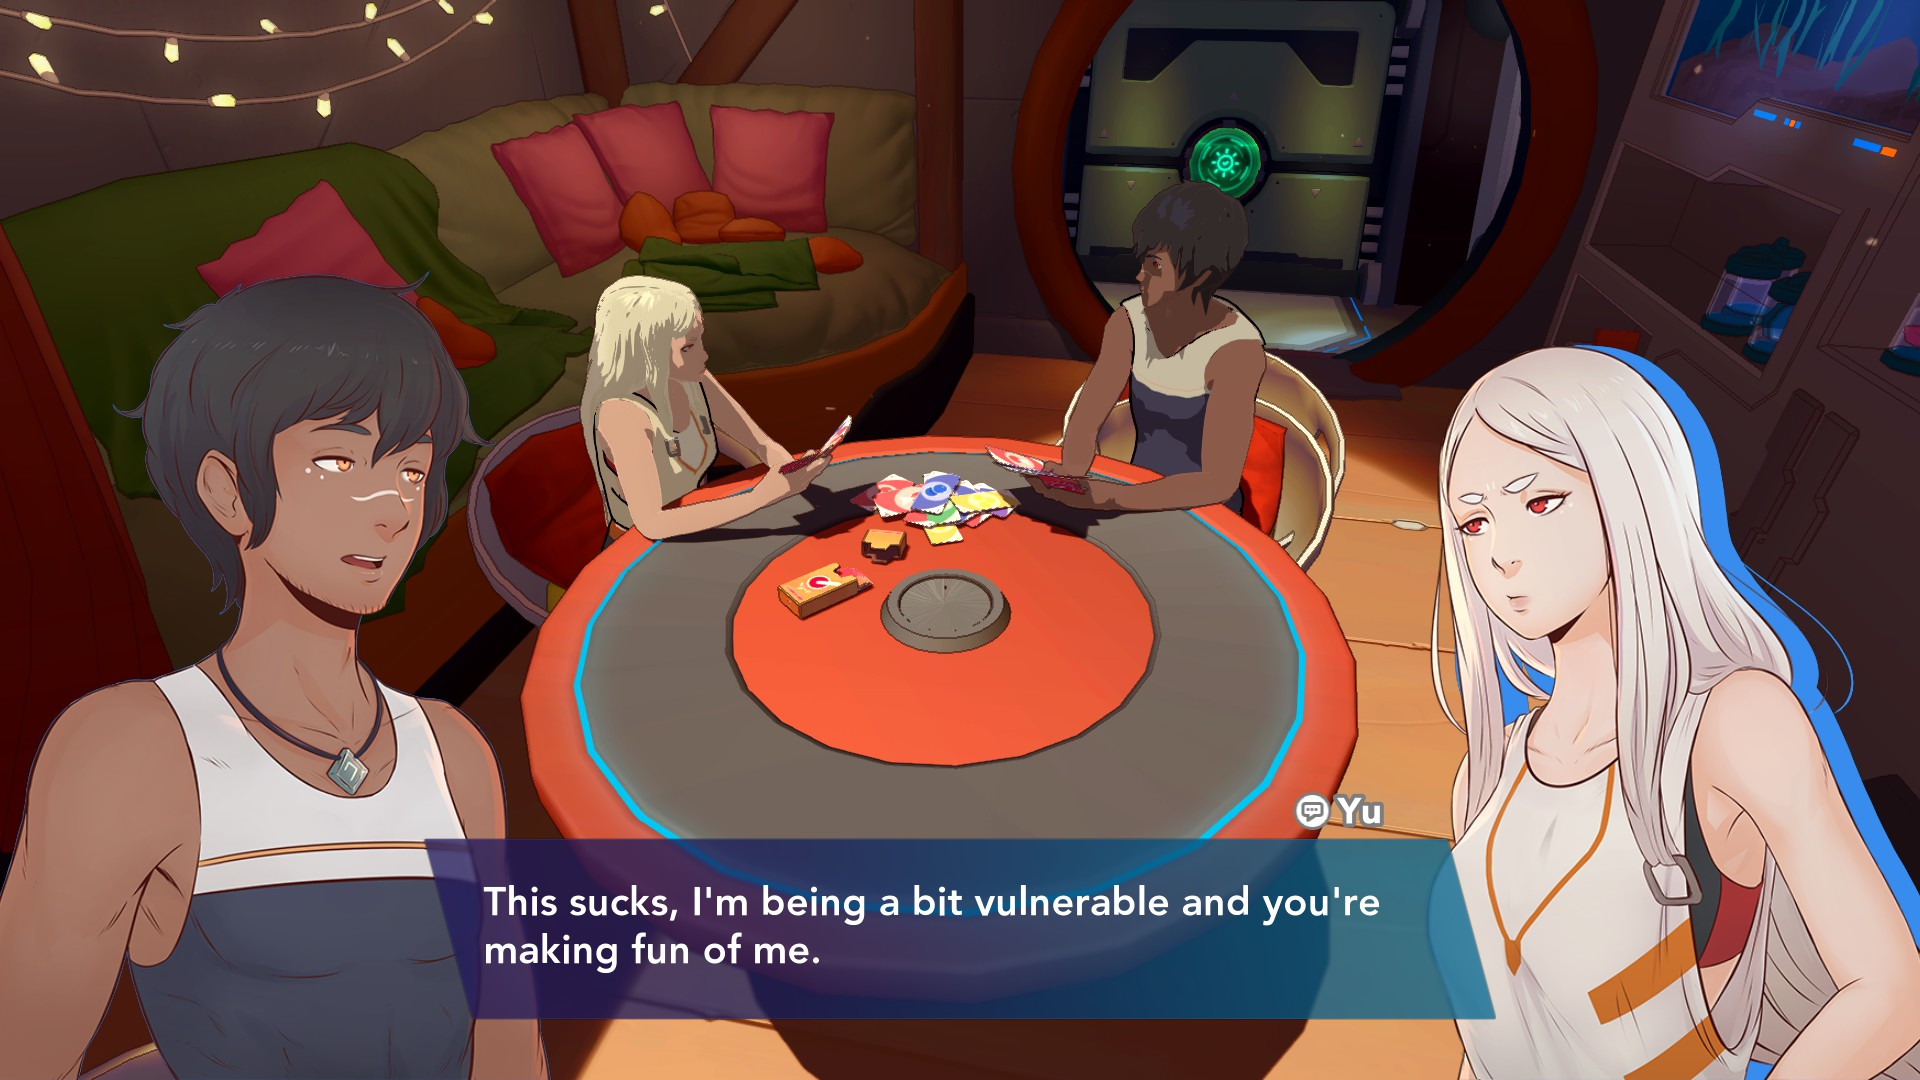 Kay and Yu are sat at the living area table in their spaceship home, playing a card game that looks a bit like Uno. Yu is saying 'This sucks, I'm being a bit vulnerable and you're making fun of me.'